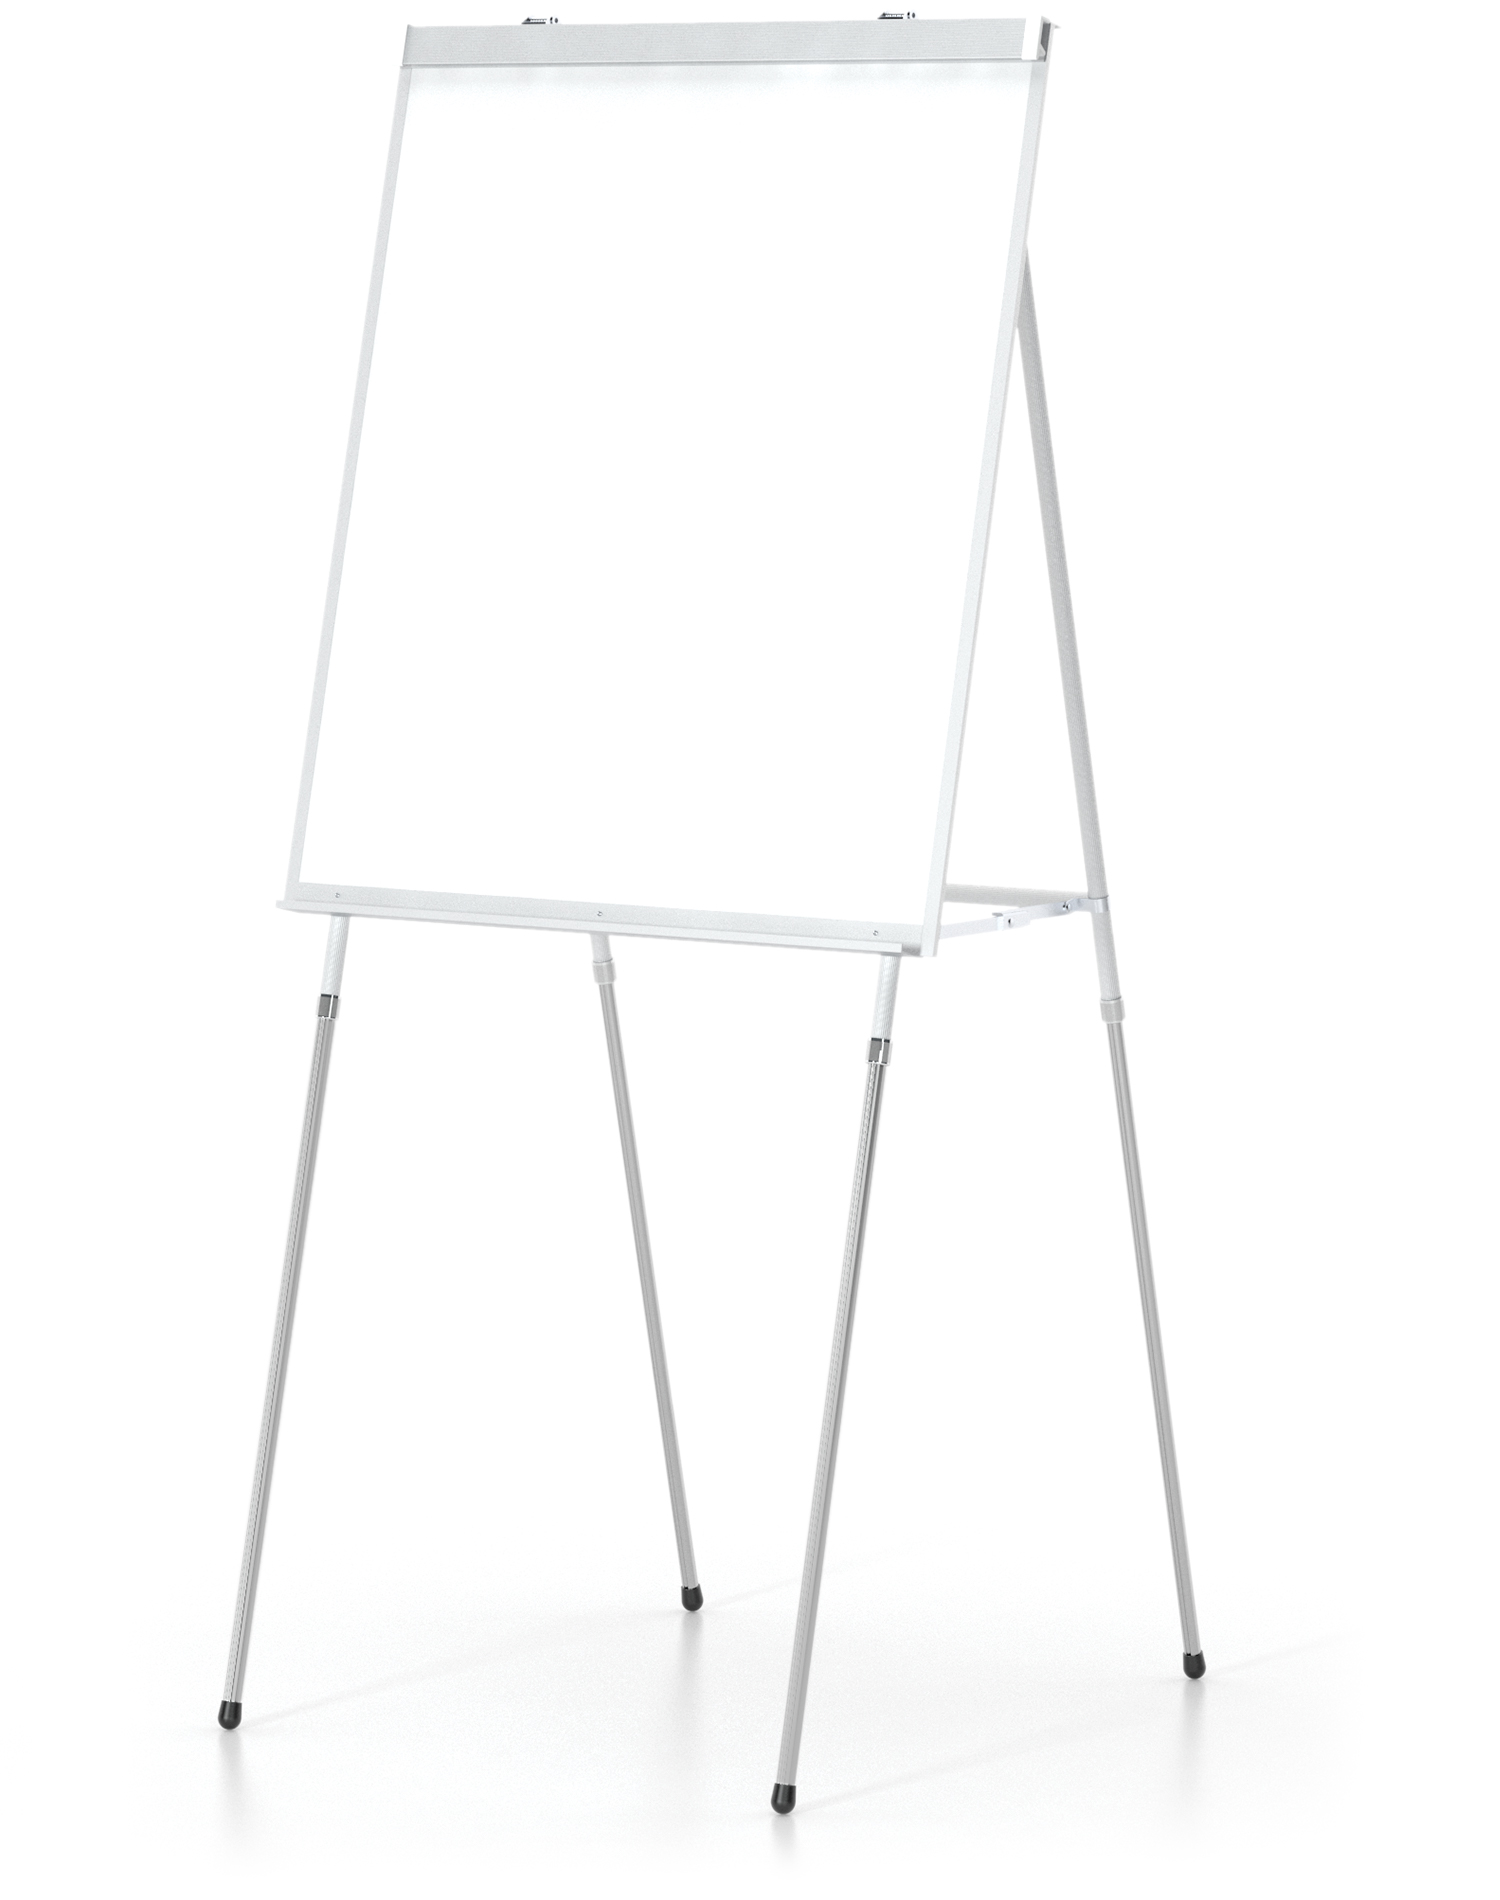 Portable Presentation Floor Easels Lightweight and Durable Magnetic Board 4 Leg